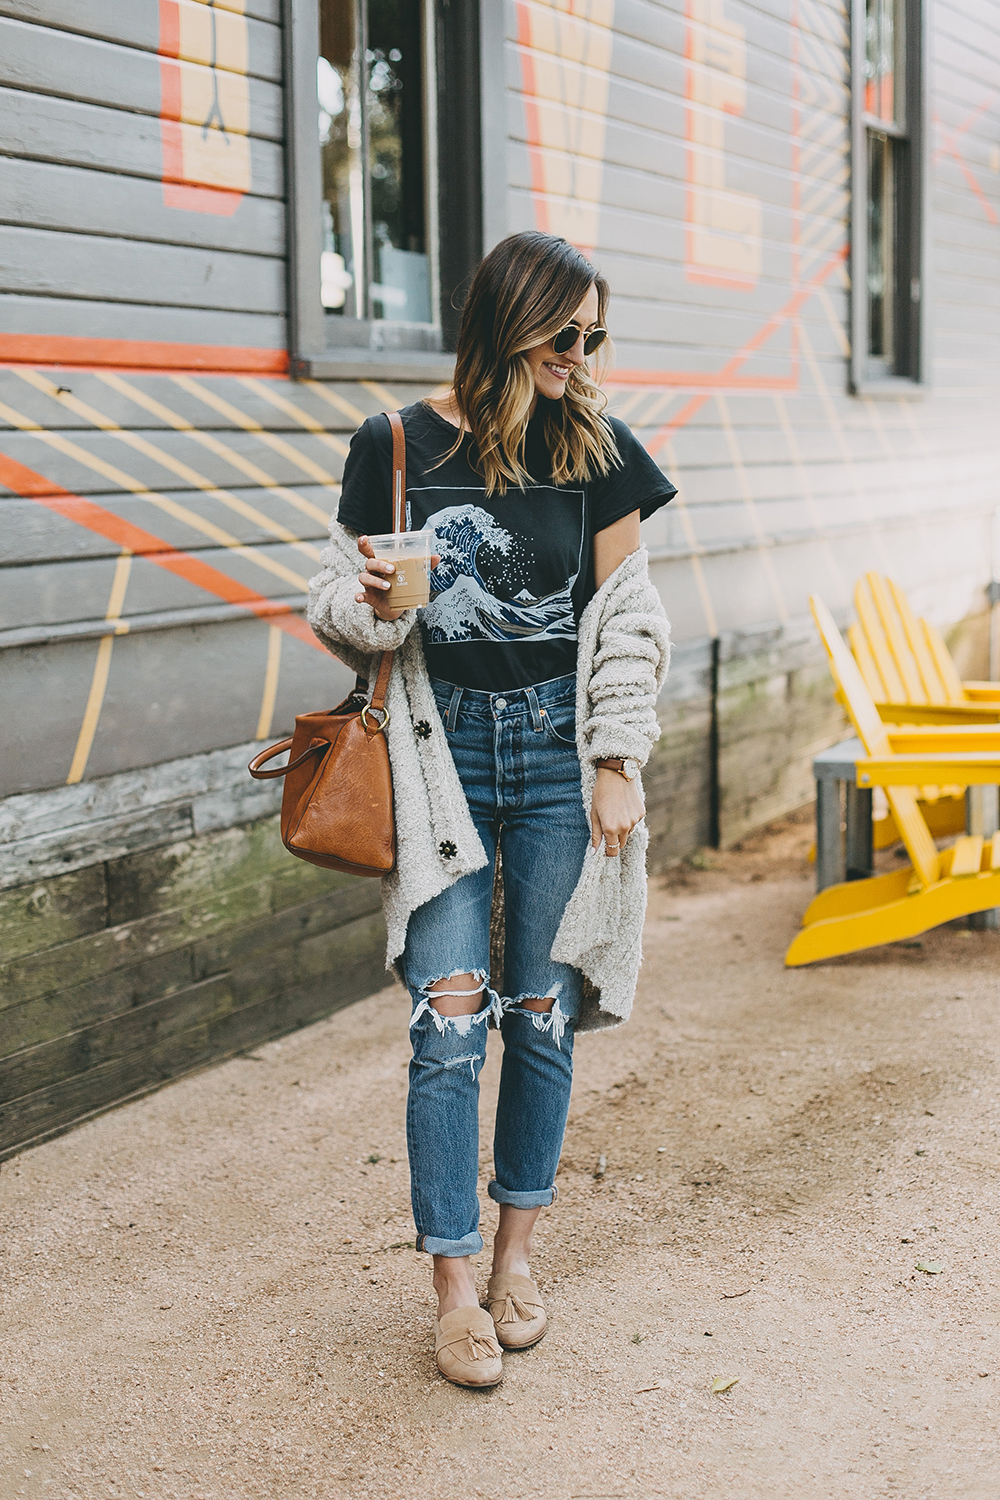 livvyland-blog-olivia-watson-toms-coffee-austin-texas-fashion-blogger-casual-fall-weekend-outfit-boucle-knit-cardigan-urban-outfitters-the-great-wave-art-6